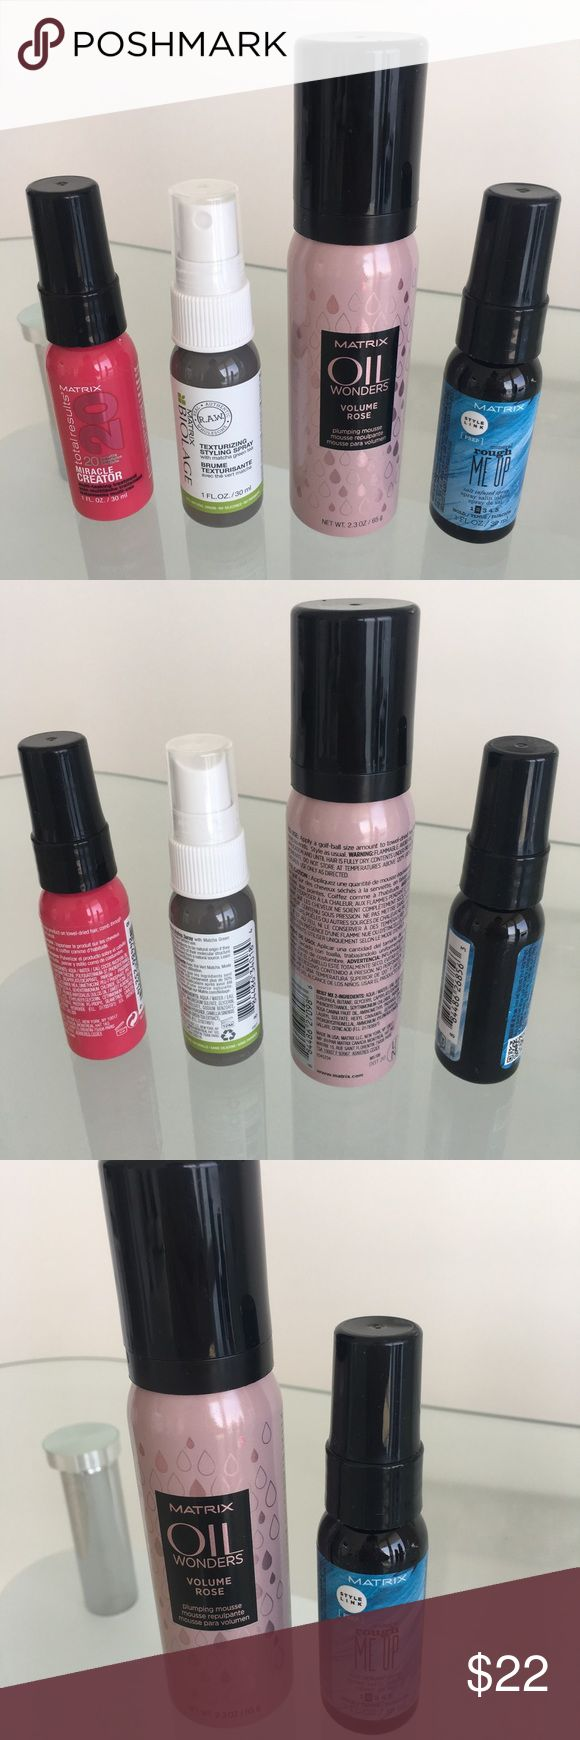 MATRIX Travel Size Set BRAND NEW! Never used!  Includes travel sizes:  20 miracle creator (1 fl oz) Texturizing Styling Spray (1 fl oz) Matrix Oil Wonders Plumping Mousse (2.3 fl oz) Rough Me Up Salt Infused Spray (1 fl oz) MATRIX Makeup